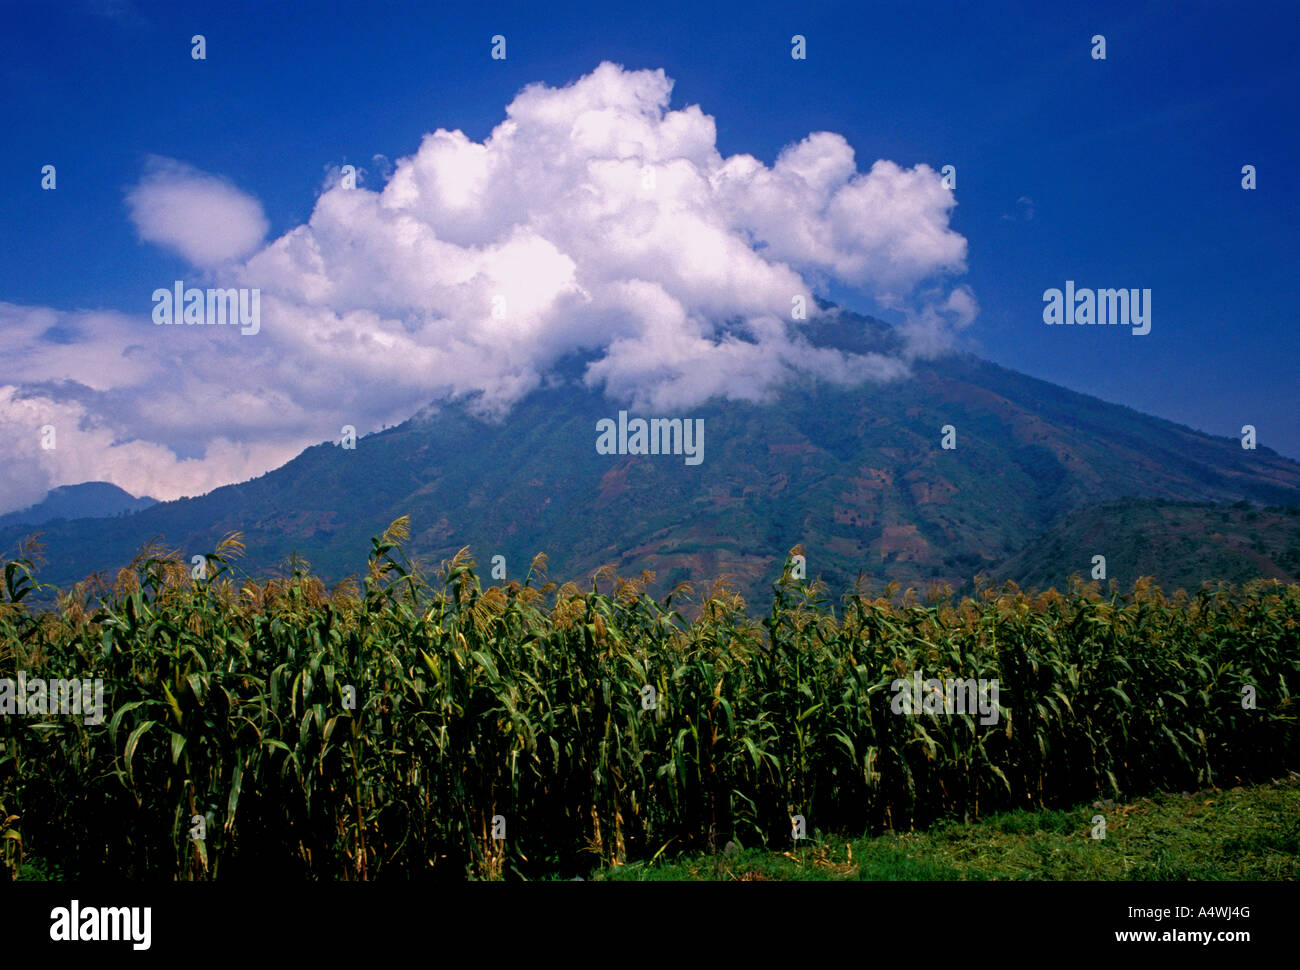 Corn crop in the town of Santiago Atitlan with San Pedro Volcano in the background Solola Department Guatemala - Stock Image